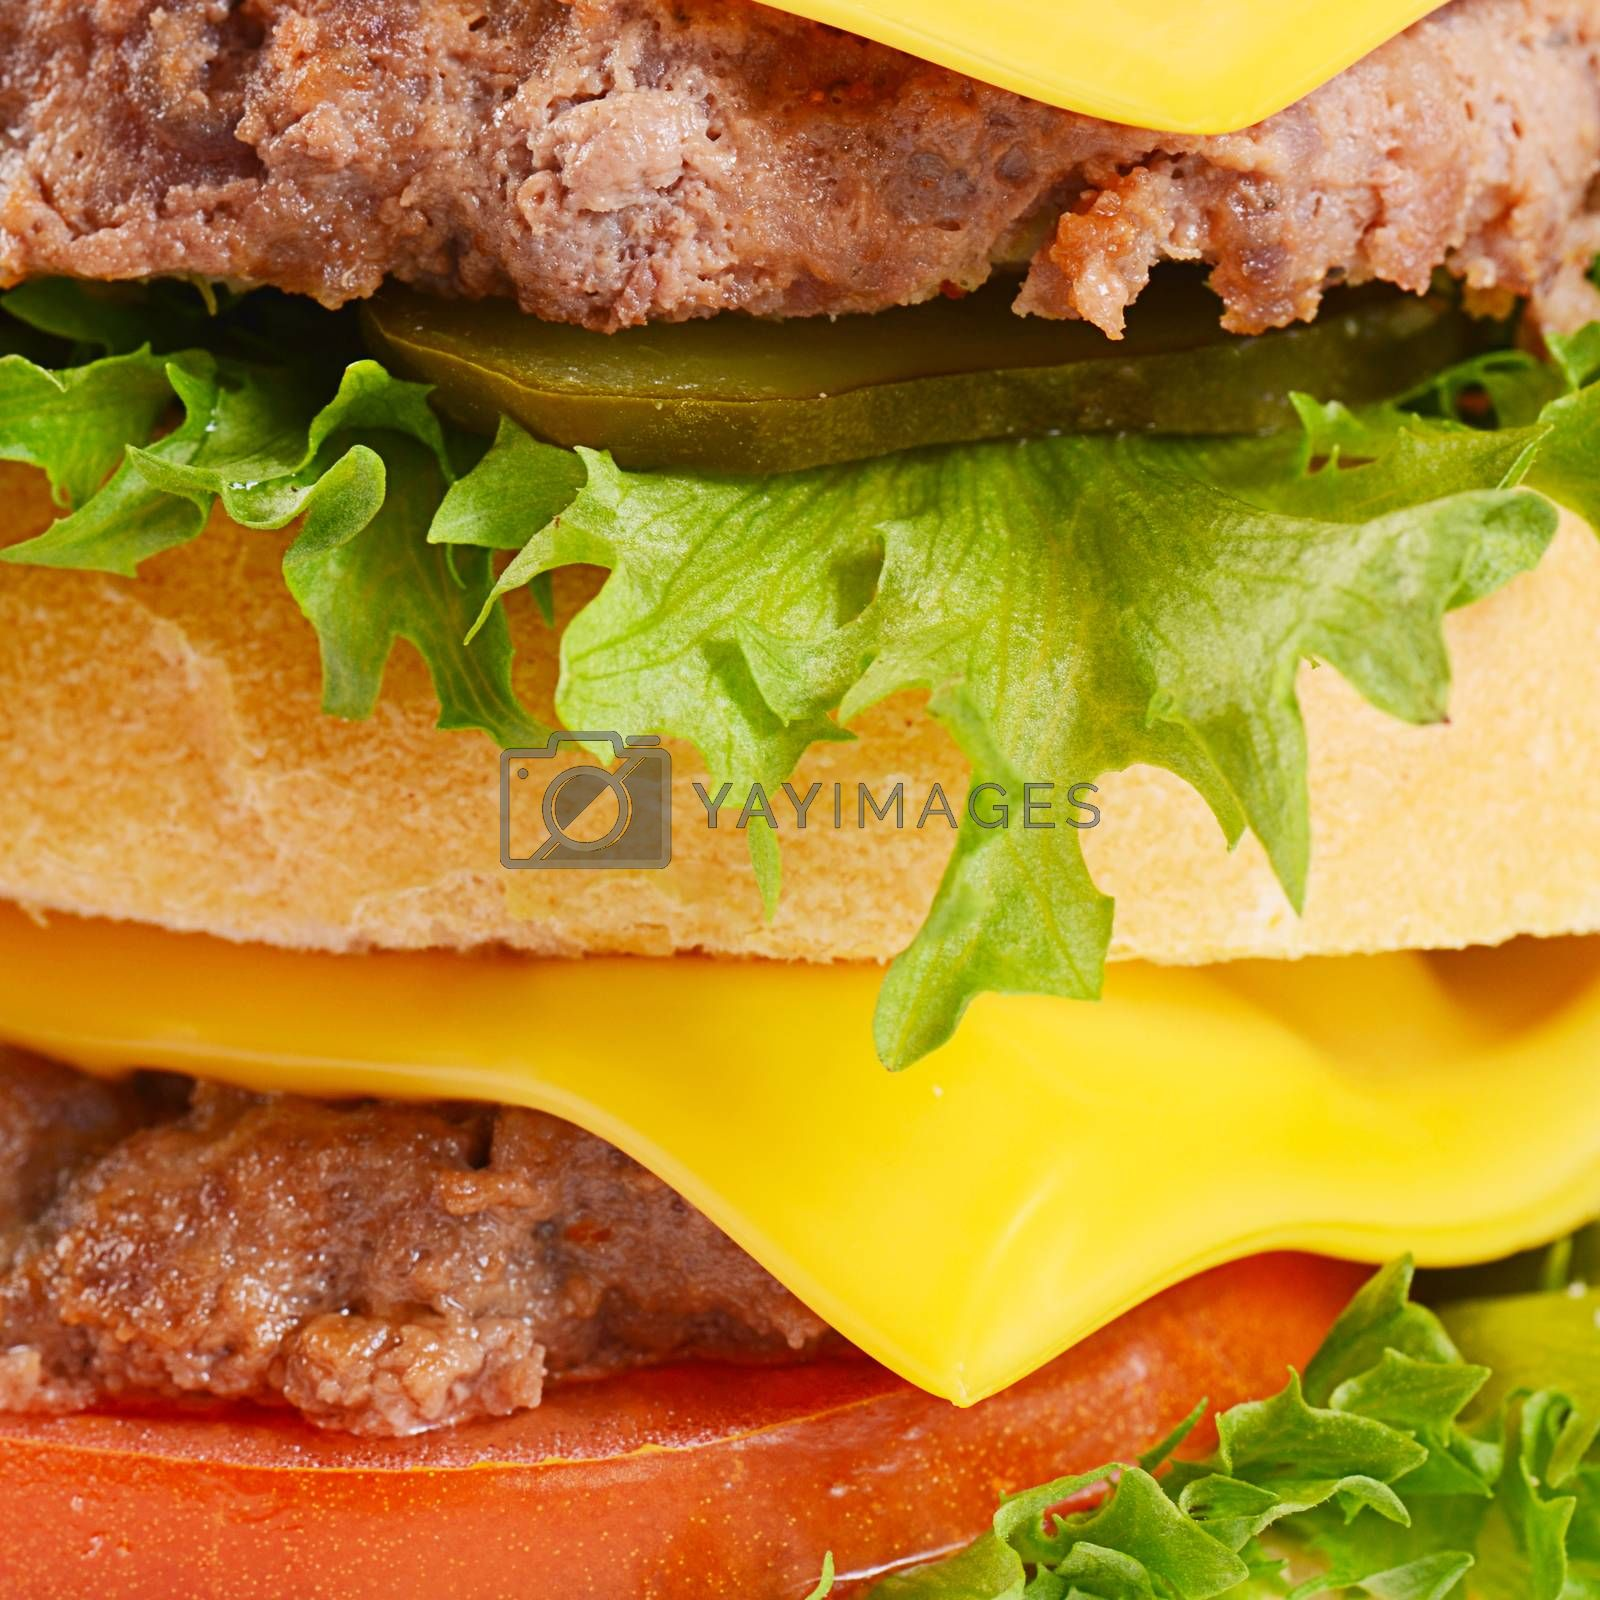 Hamburger with cutlet and cheese on white